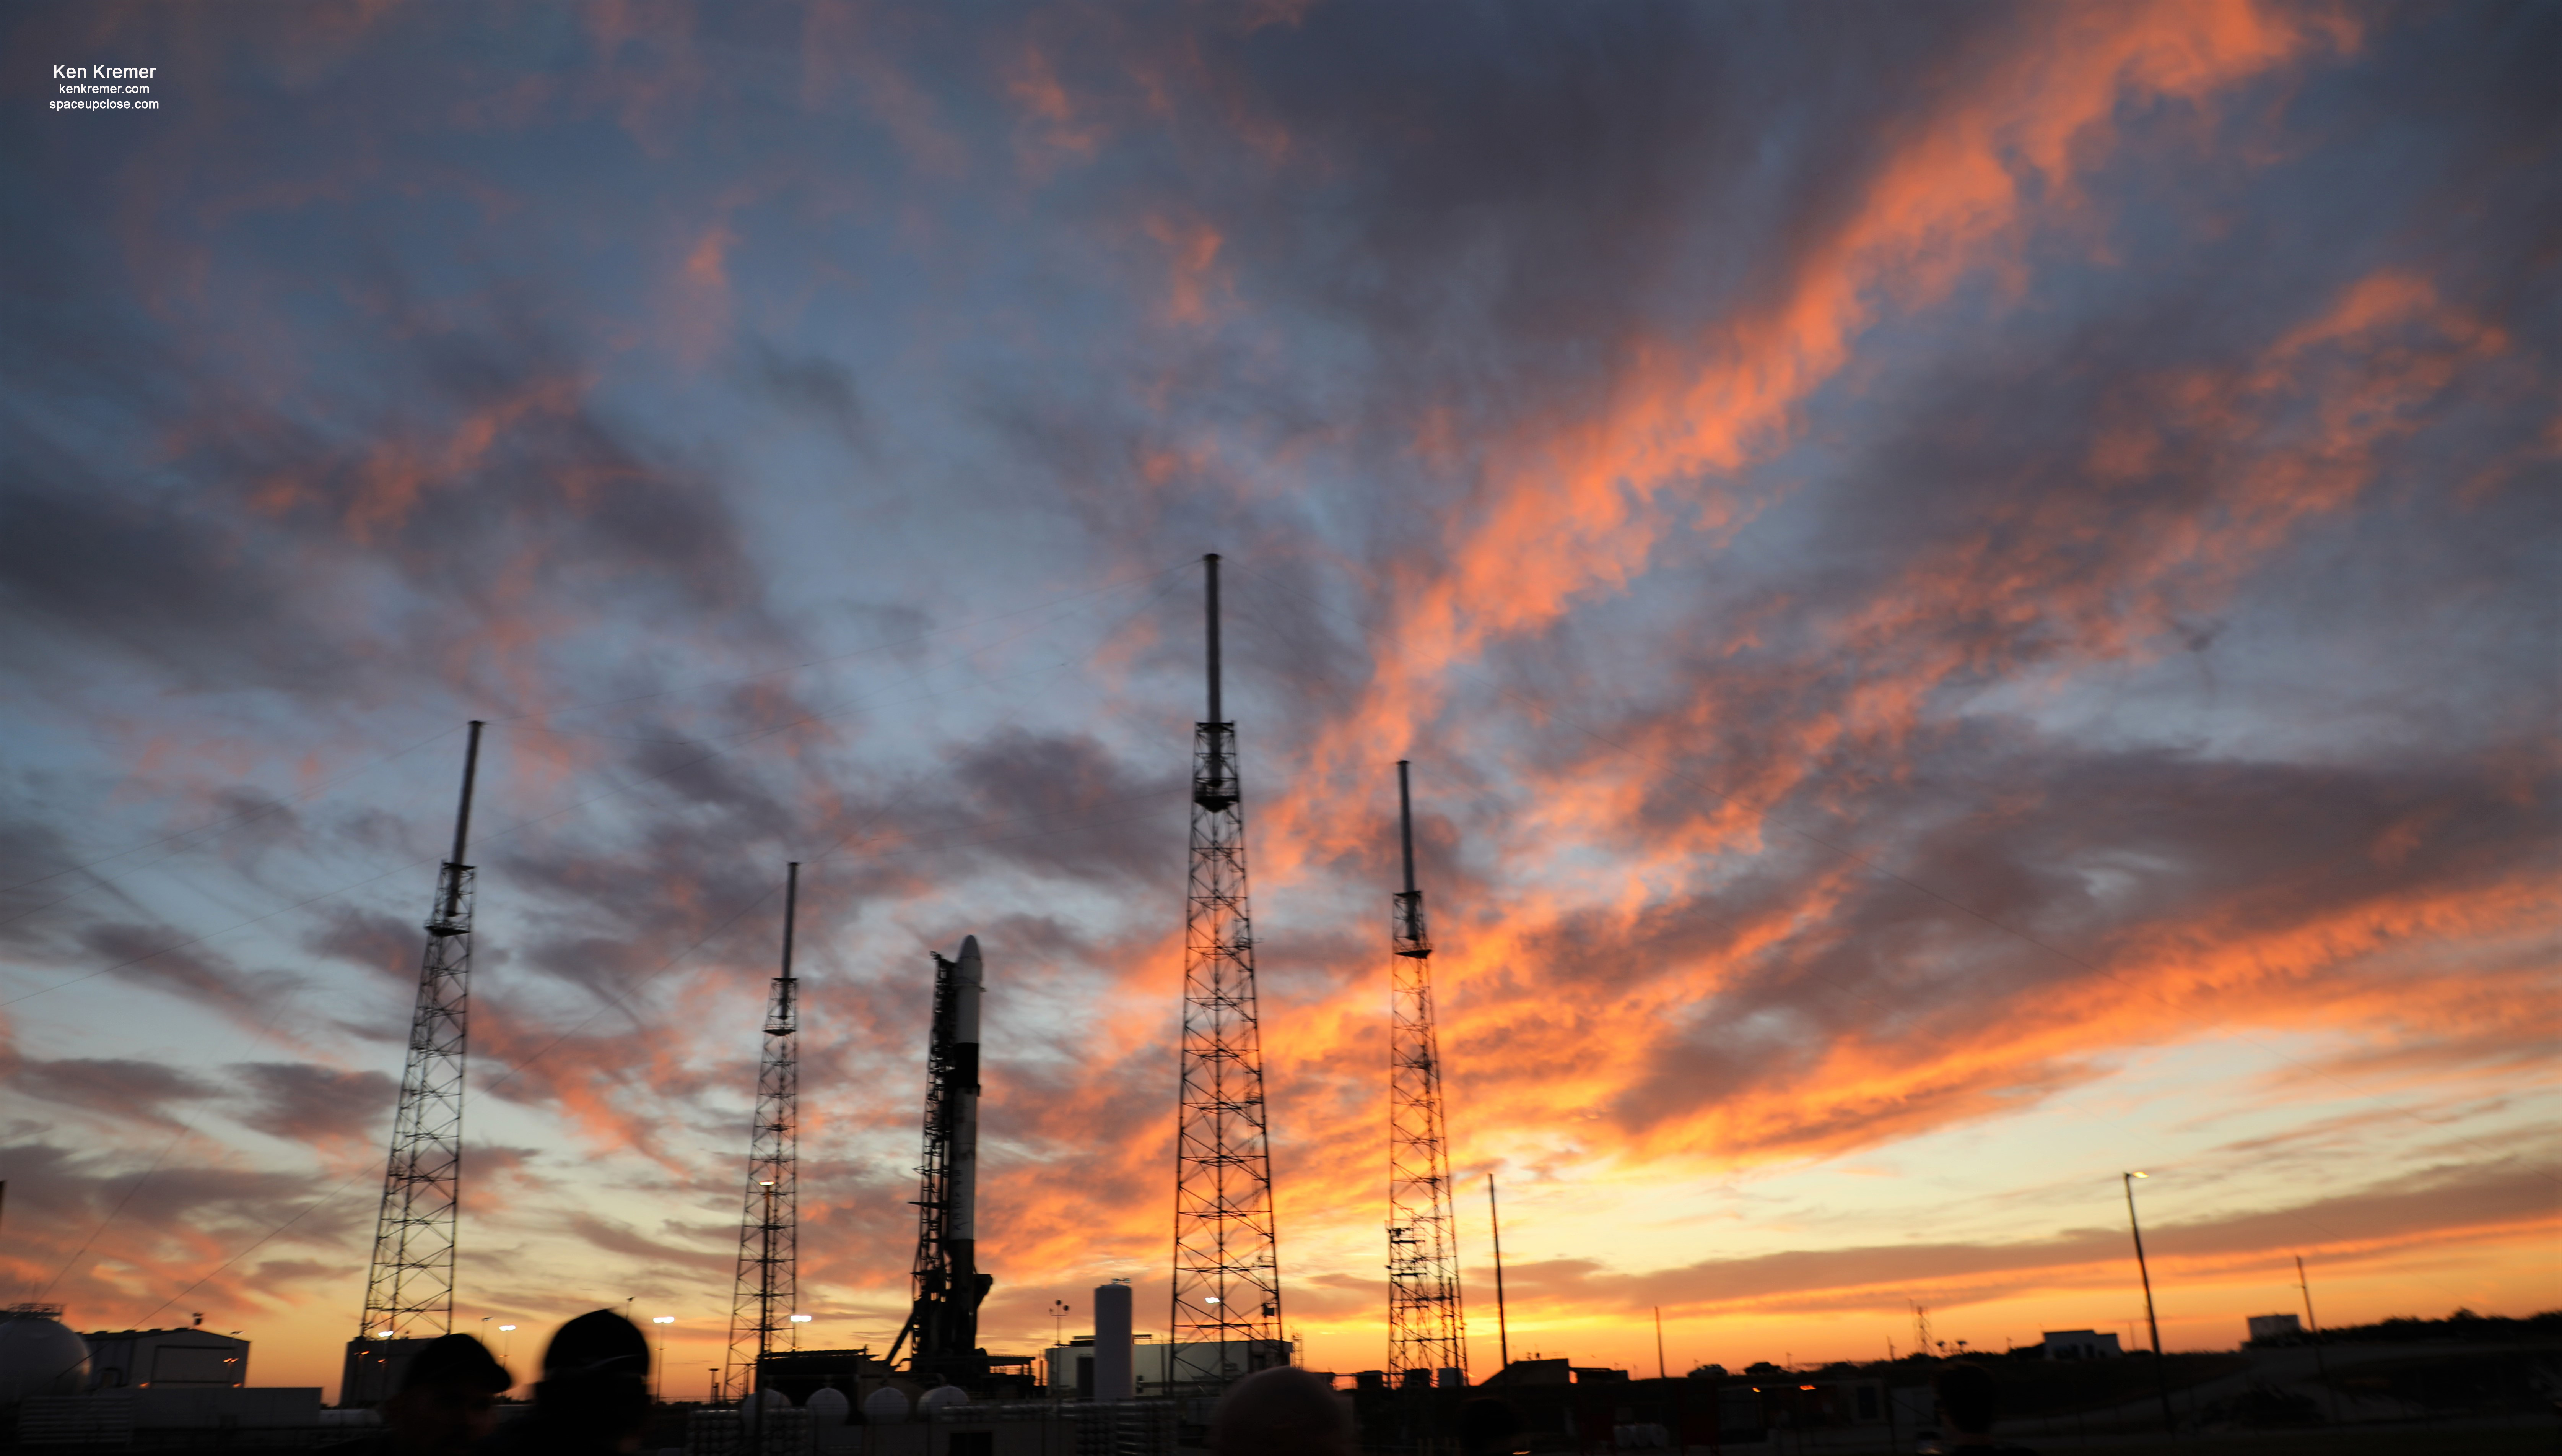 Fabulous Fiery Sunset Greets Final SpaceX Dragon 1 Vertical On Falcon 9 for NASA Cargo Flight to ISS Friday March 6: Watch Live/Photos